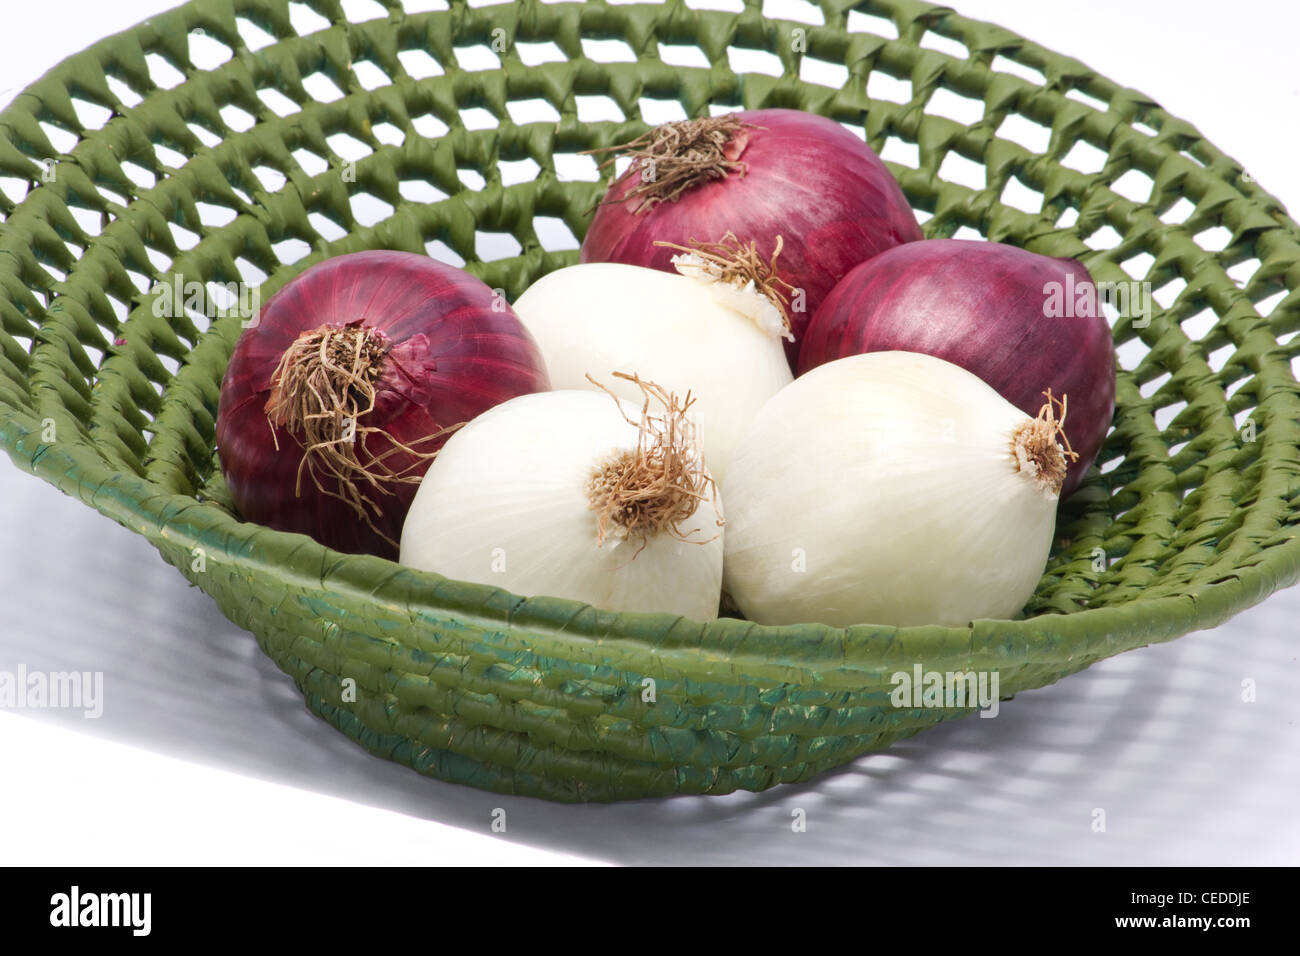 White and red onions in a basket on white background - Stock Image